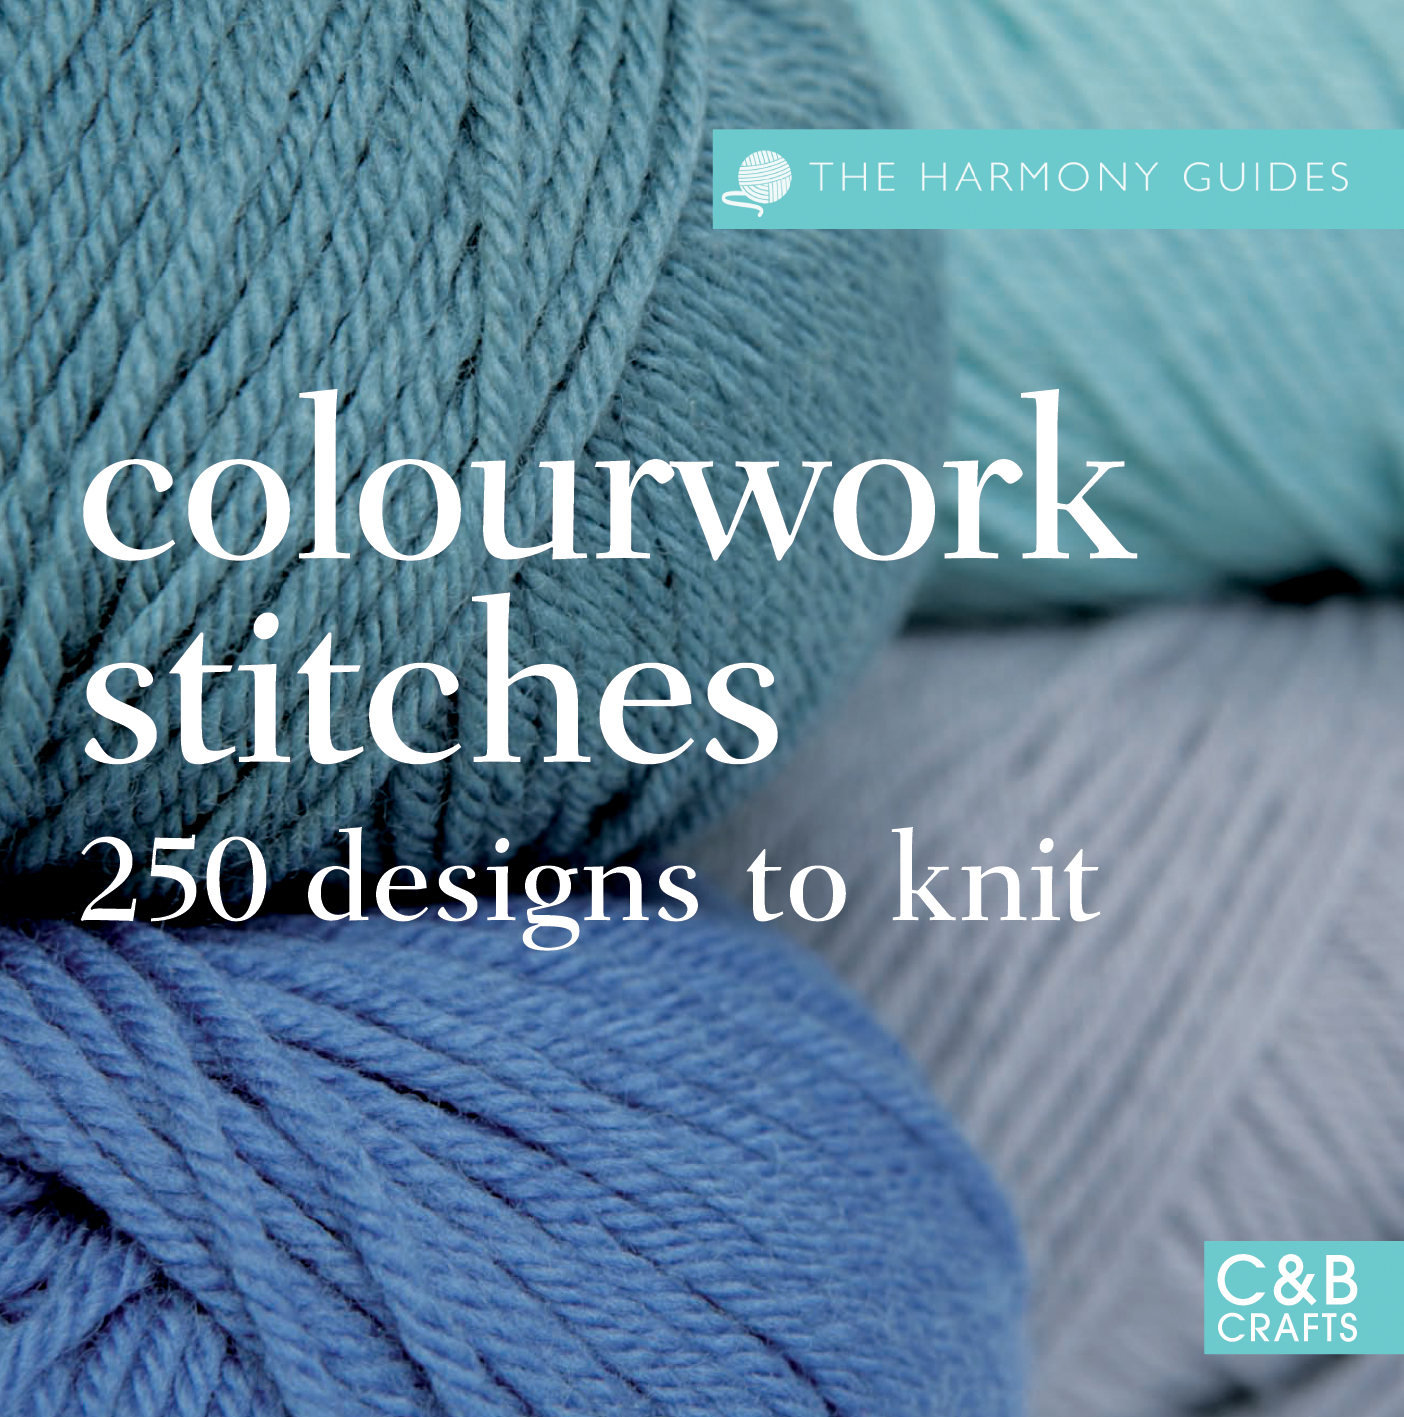 The Harmony Guides: Colourwork Stitches